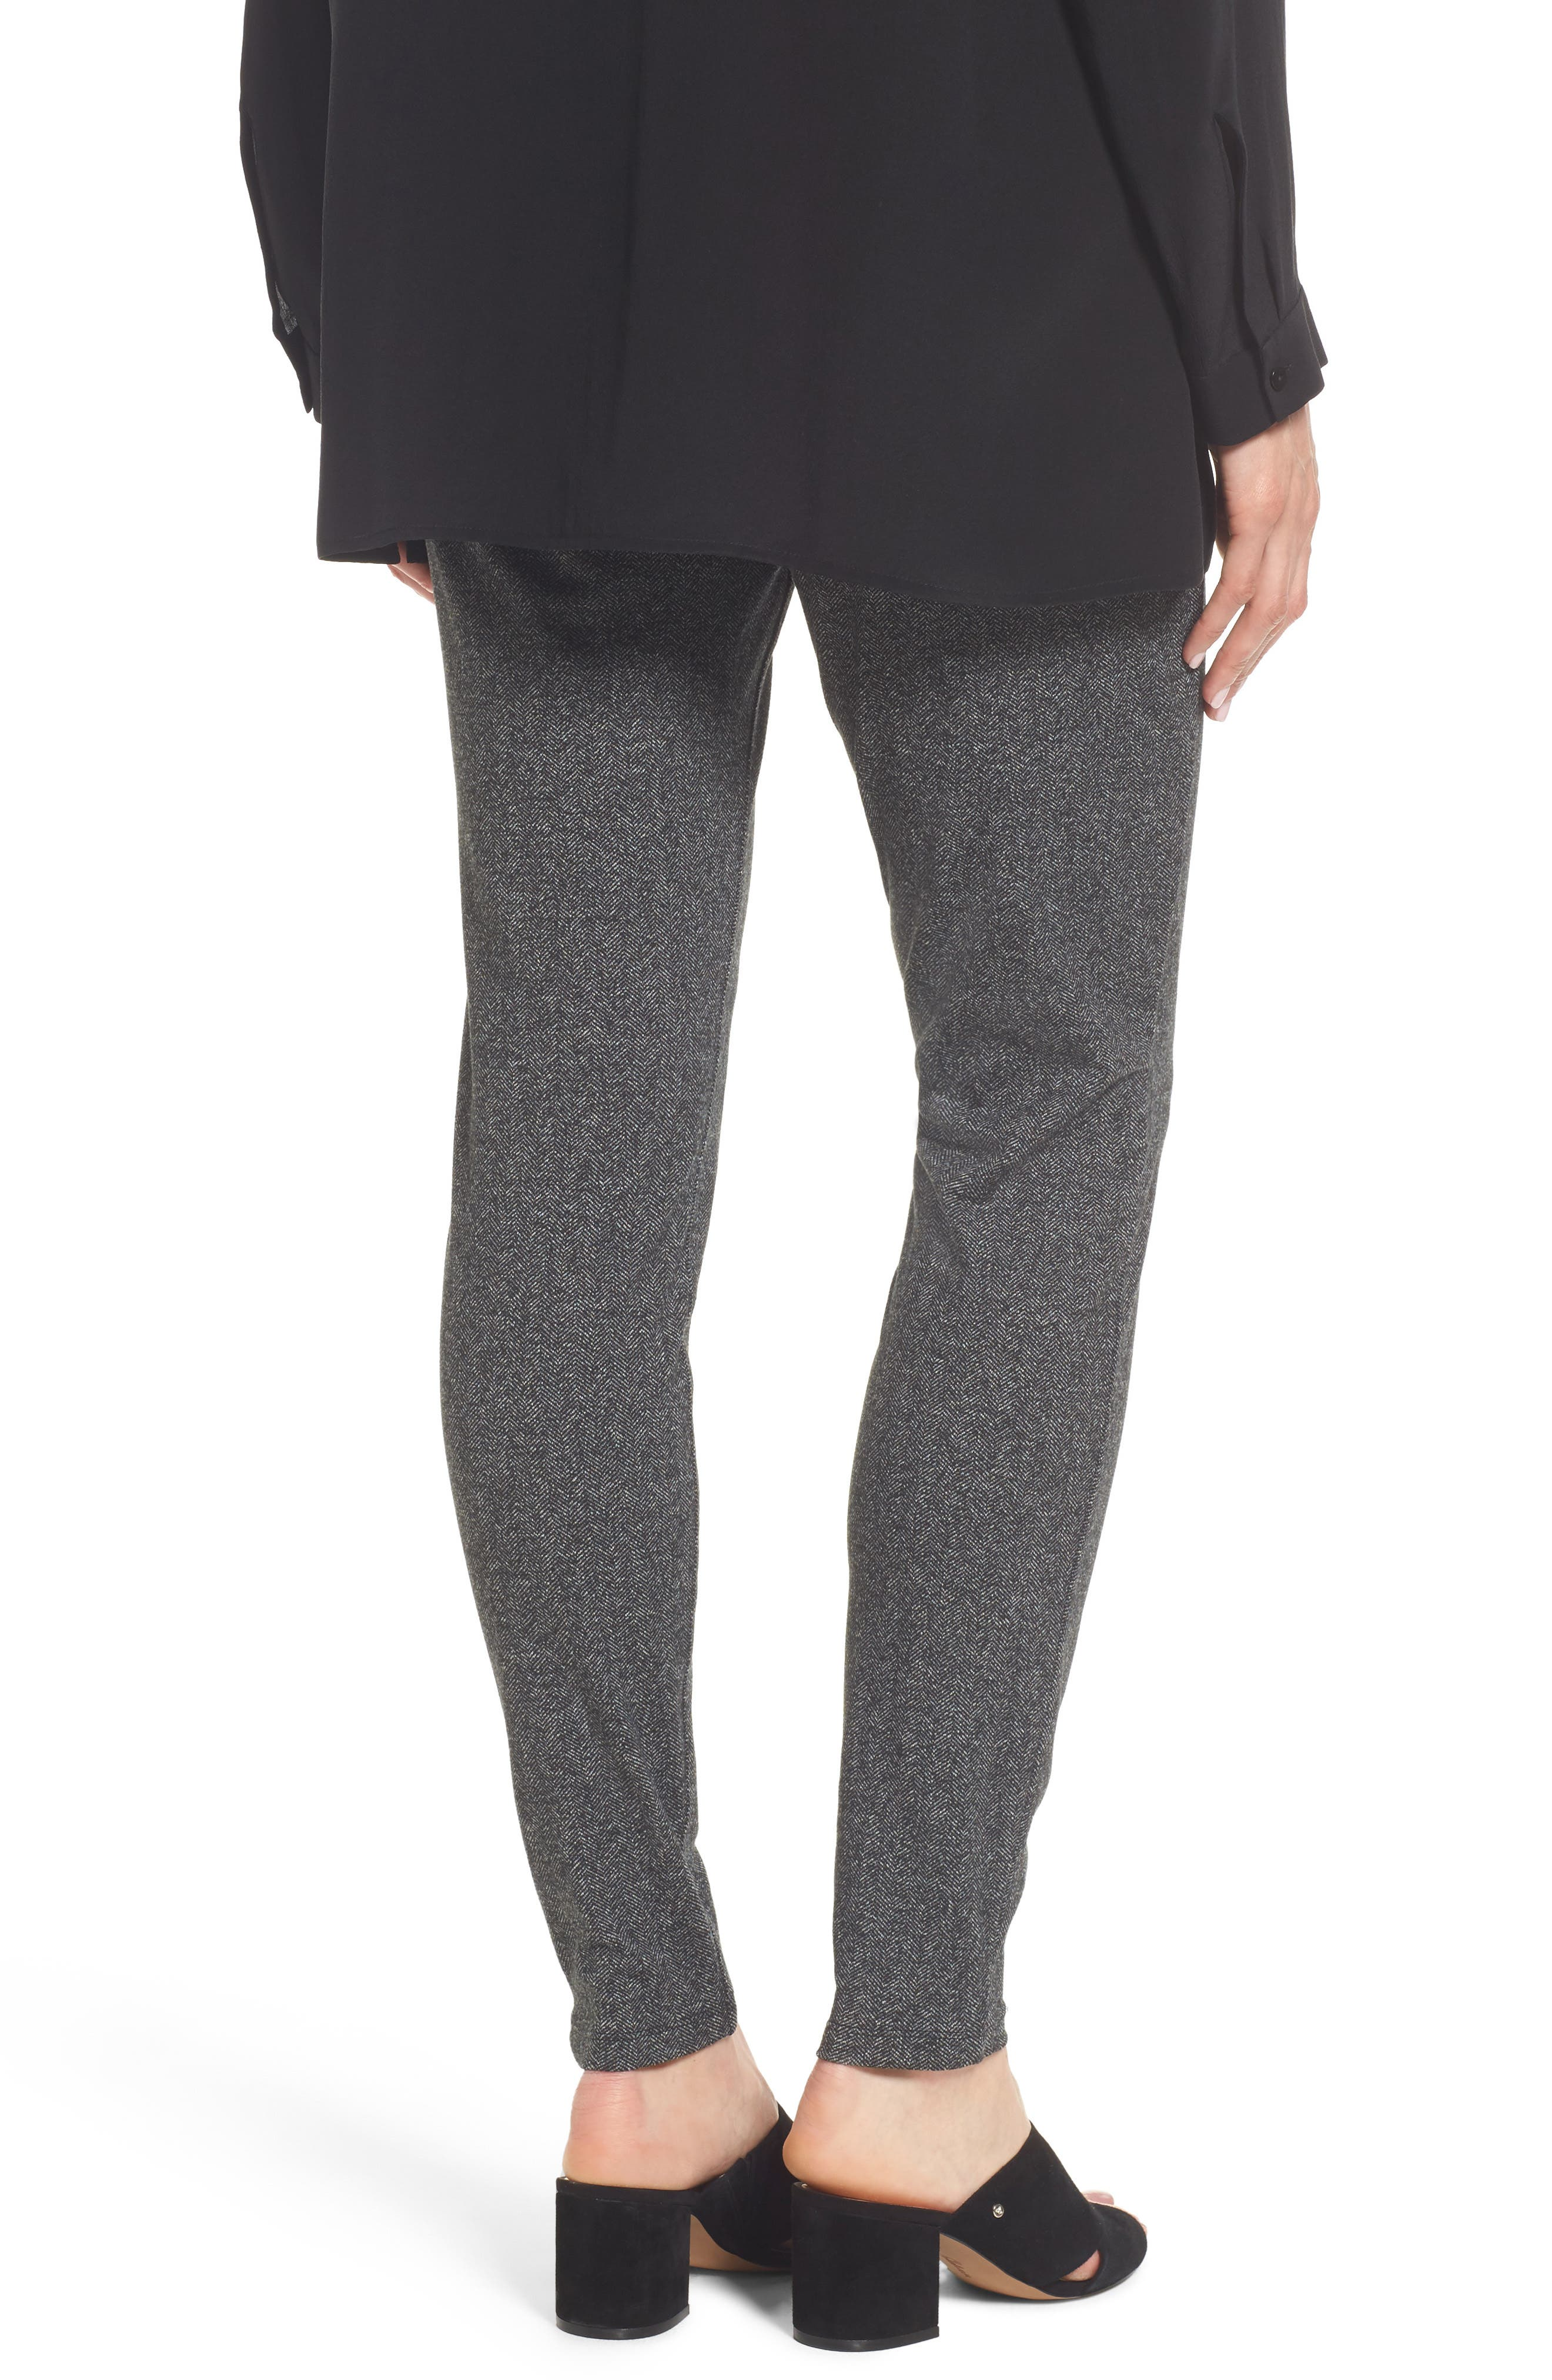 Herringbone Leggings,                             Alternate thumbnail 2, color,                             Charcoal